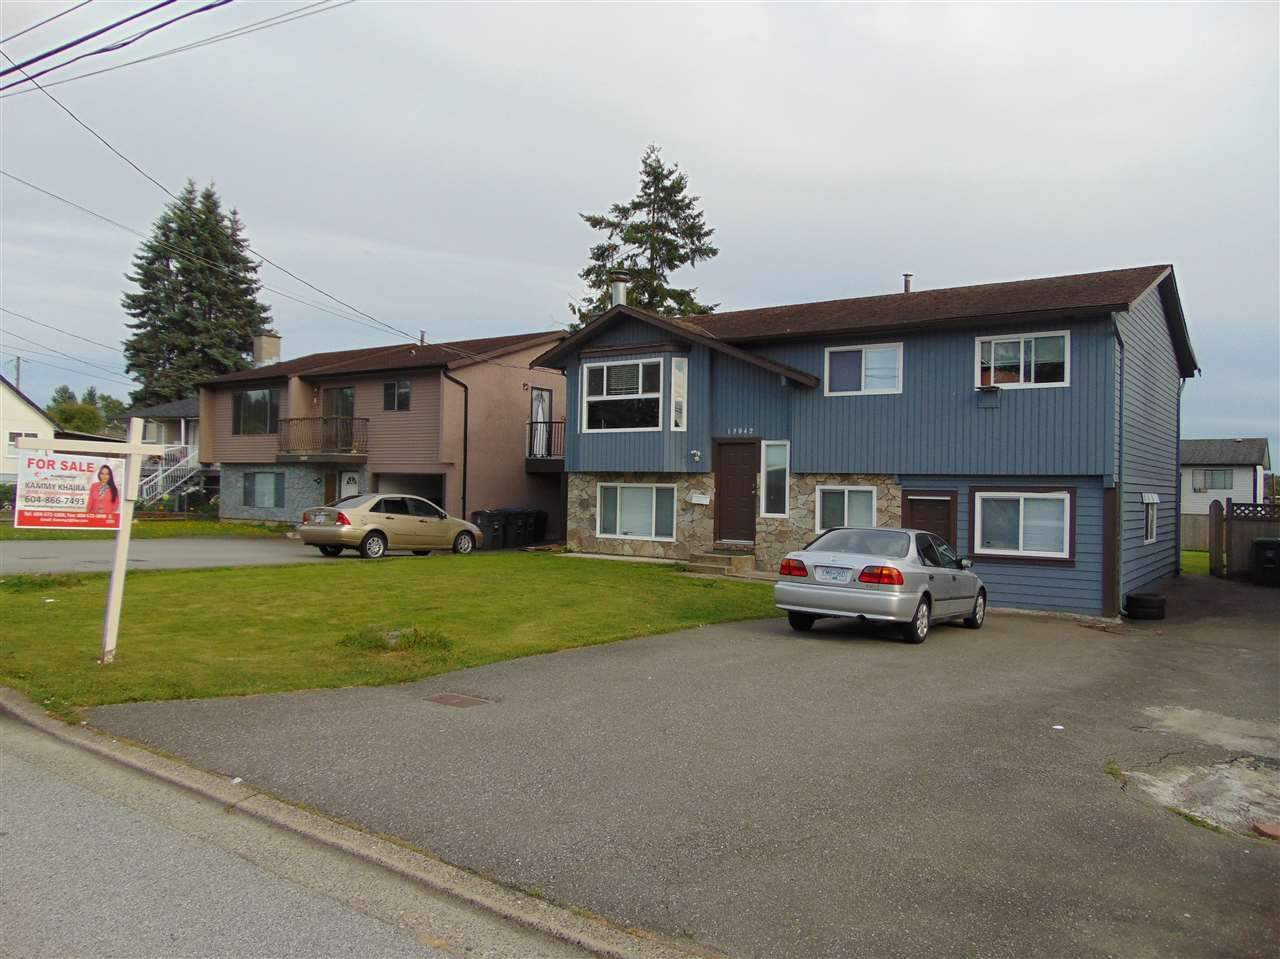 Removed: 13842 92 Avenue, Surrey, BC - Removed on 2017-11-01 05:11:31